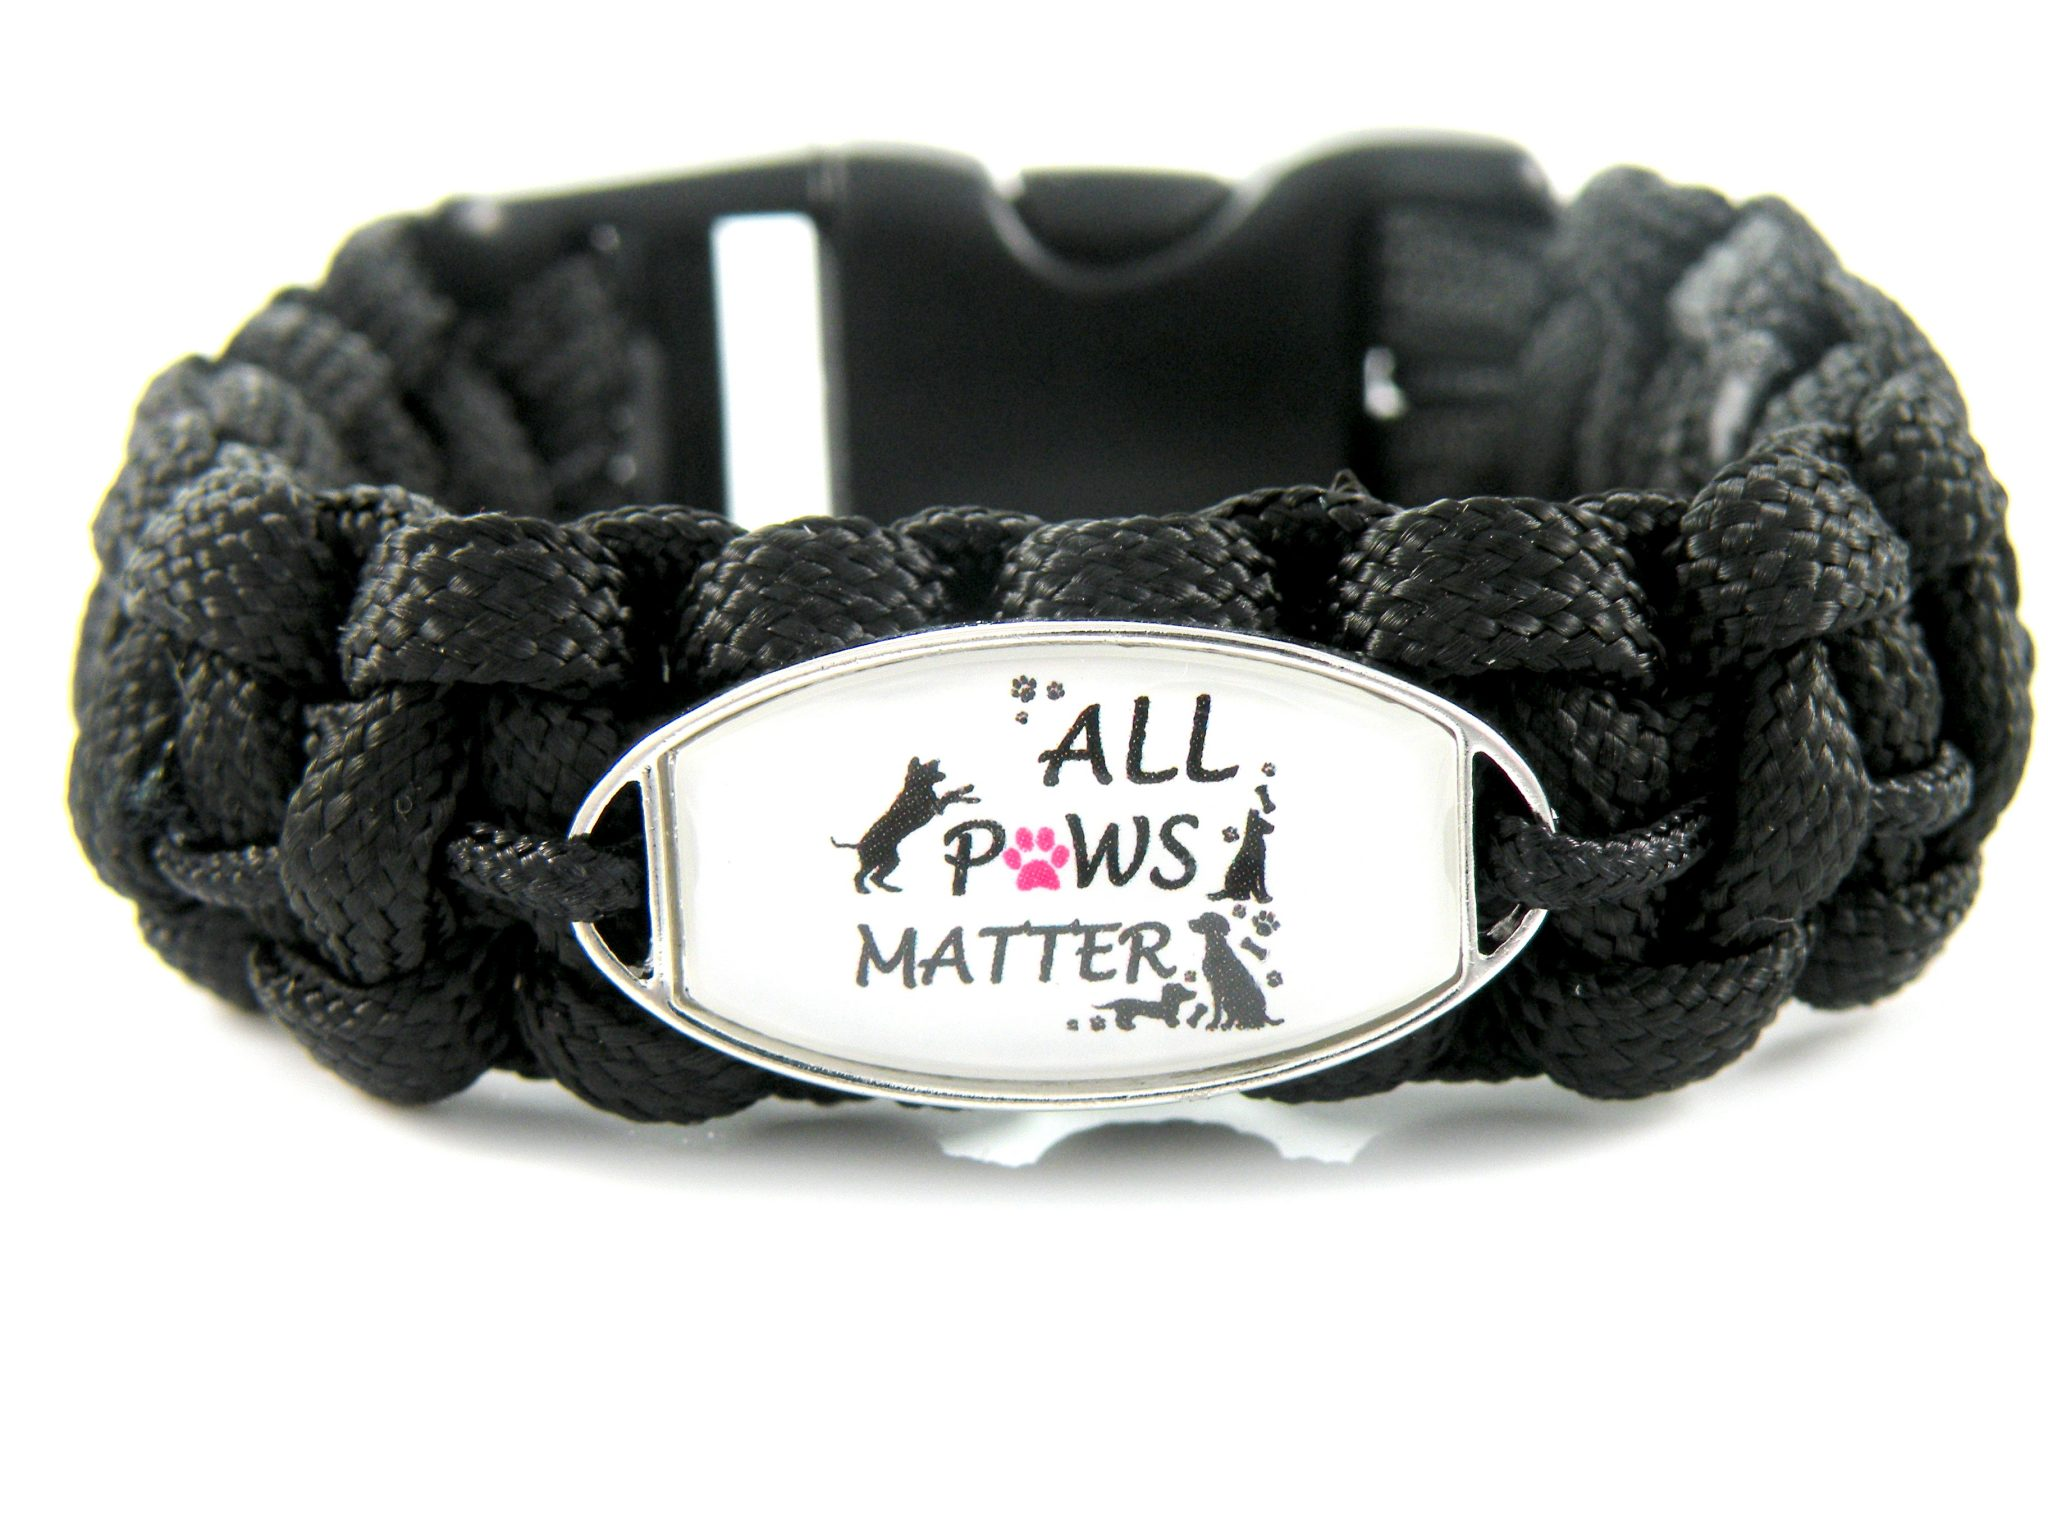 All Paws Matter Paracord Bracelet